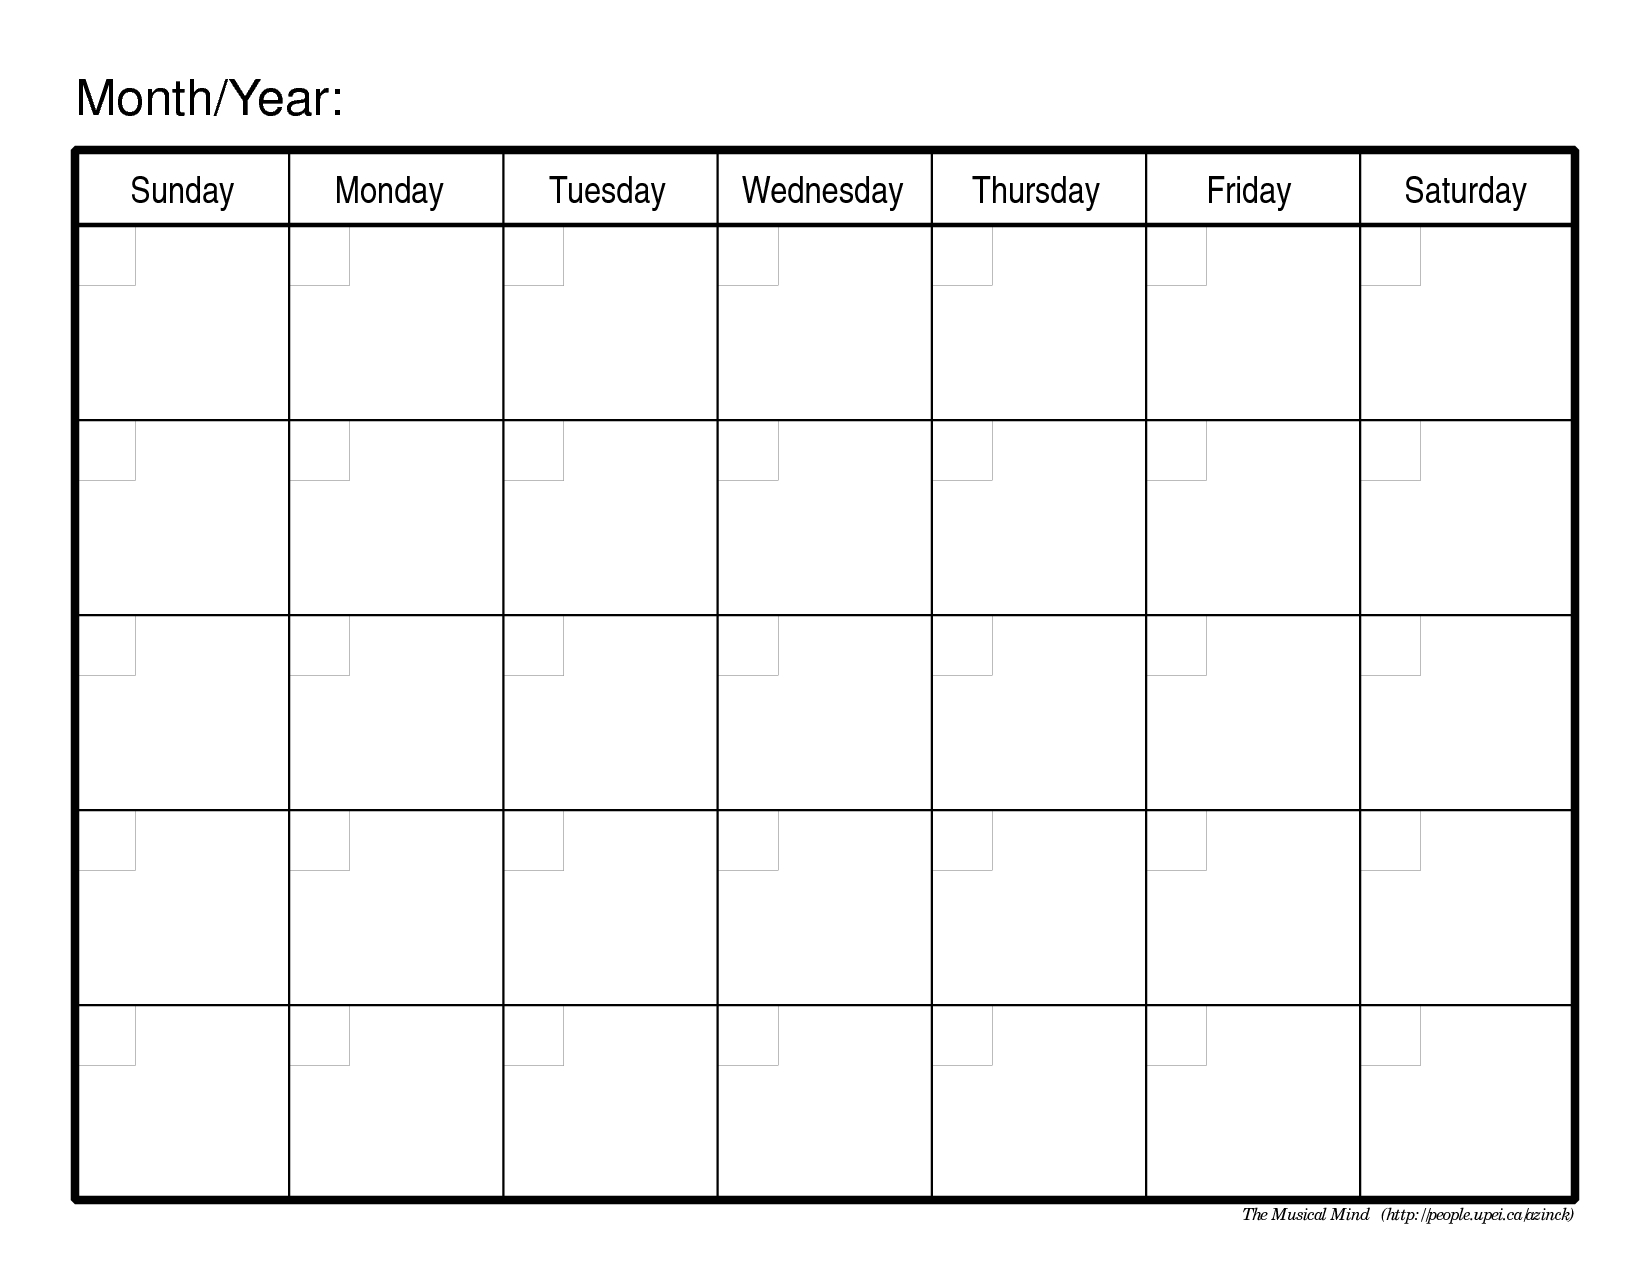 Calendar Templates Printable Free Fieldstation.co | Self Discovery_Monthly Calendar Template Blank